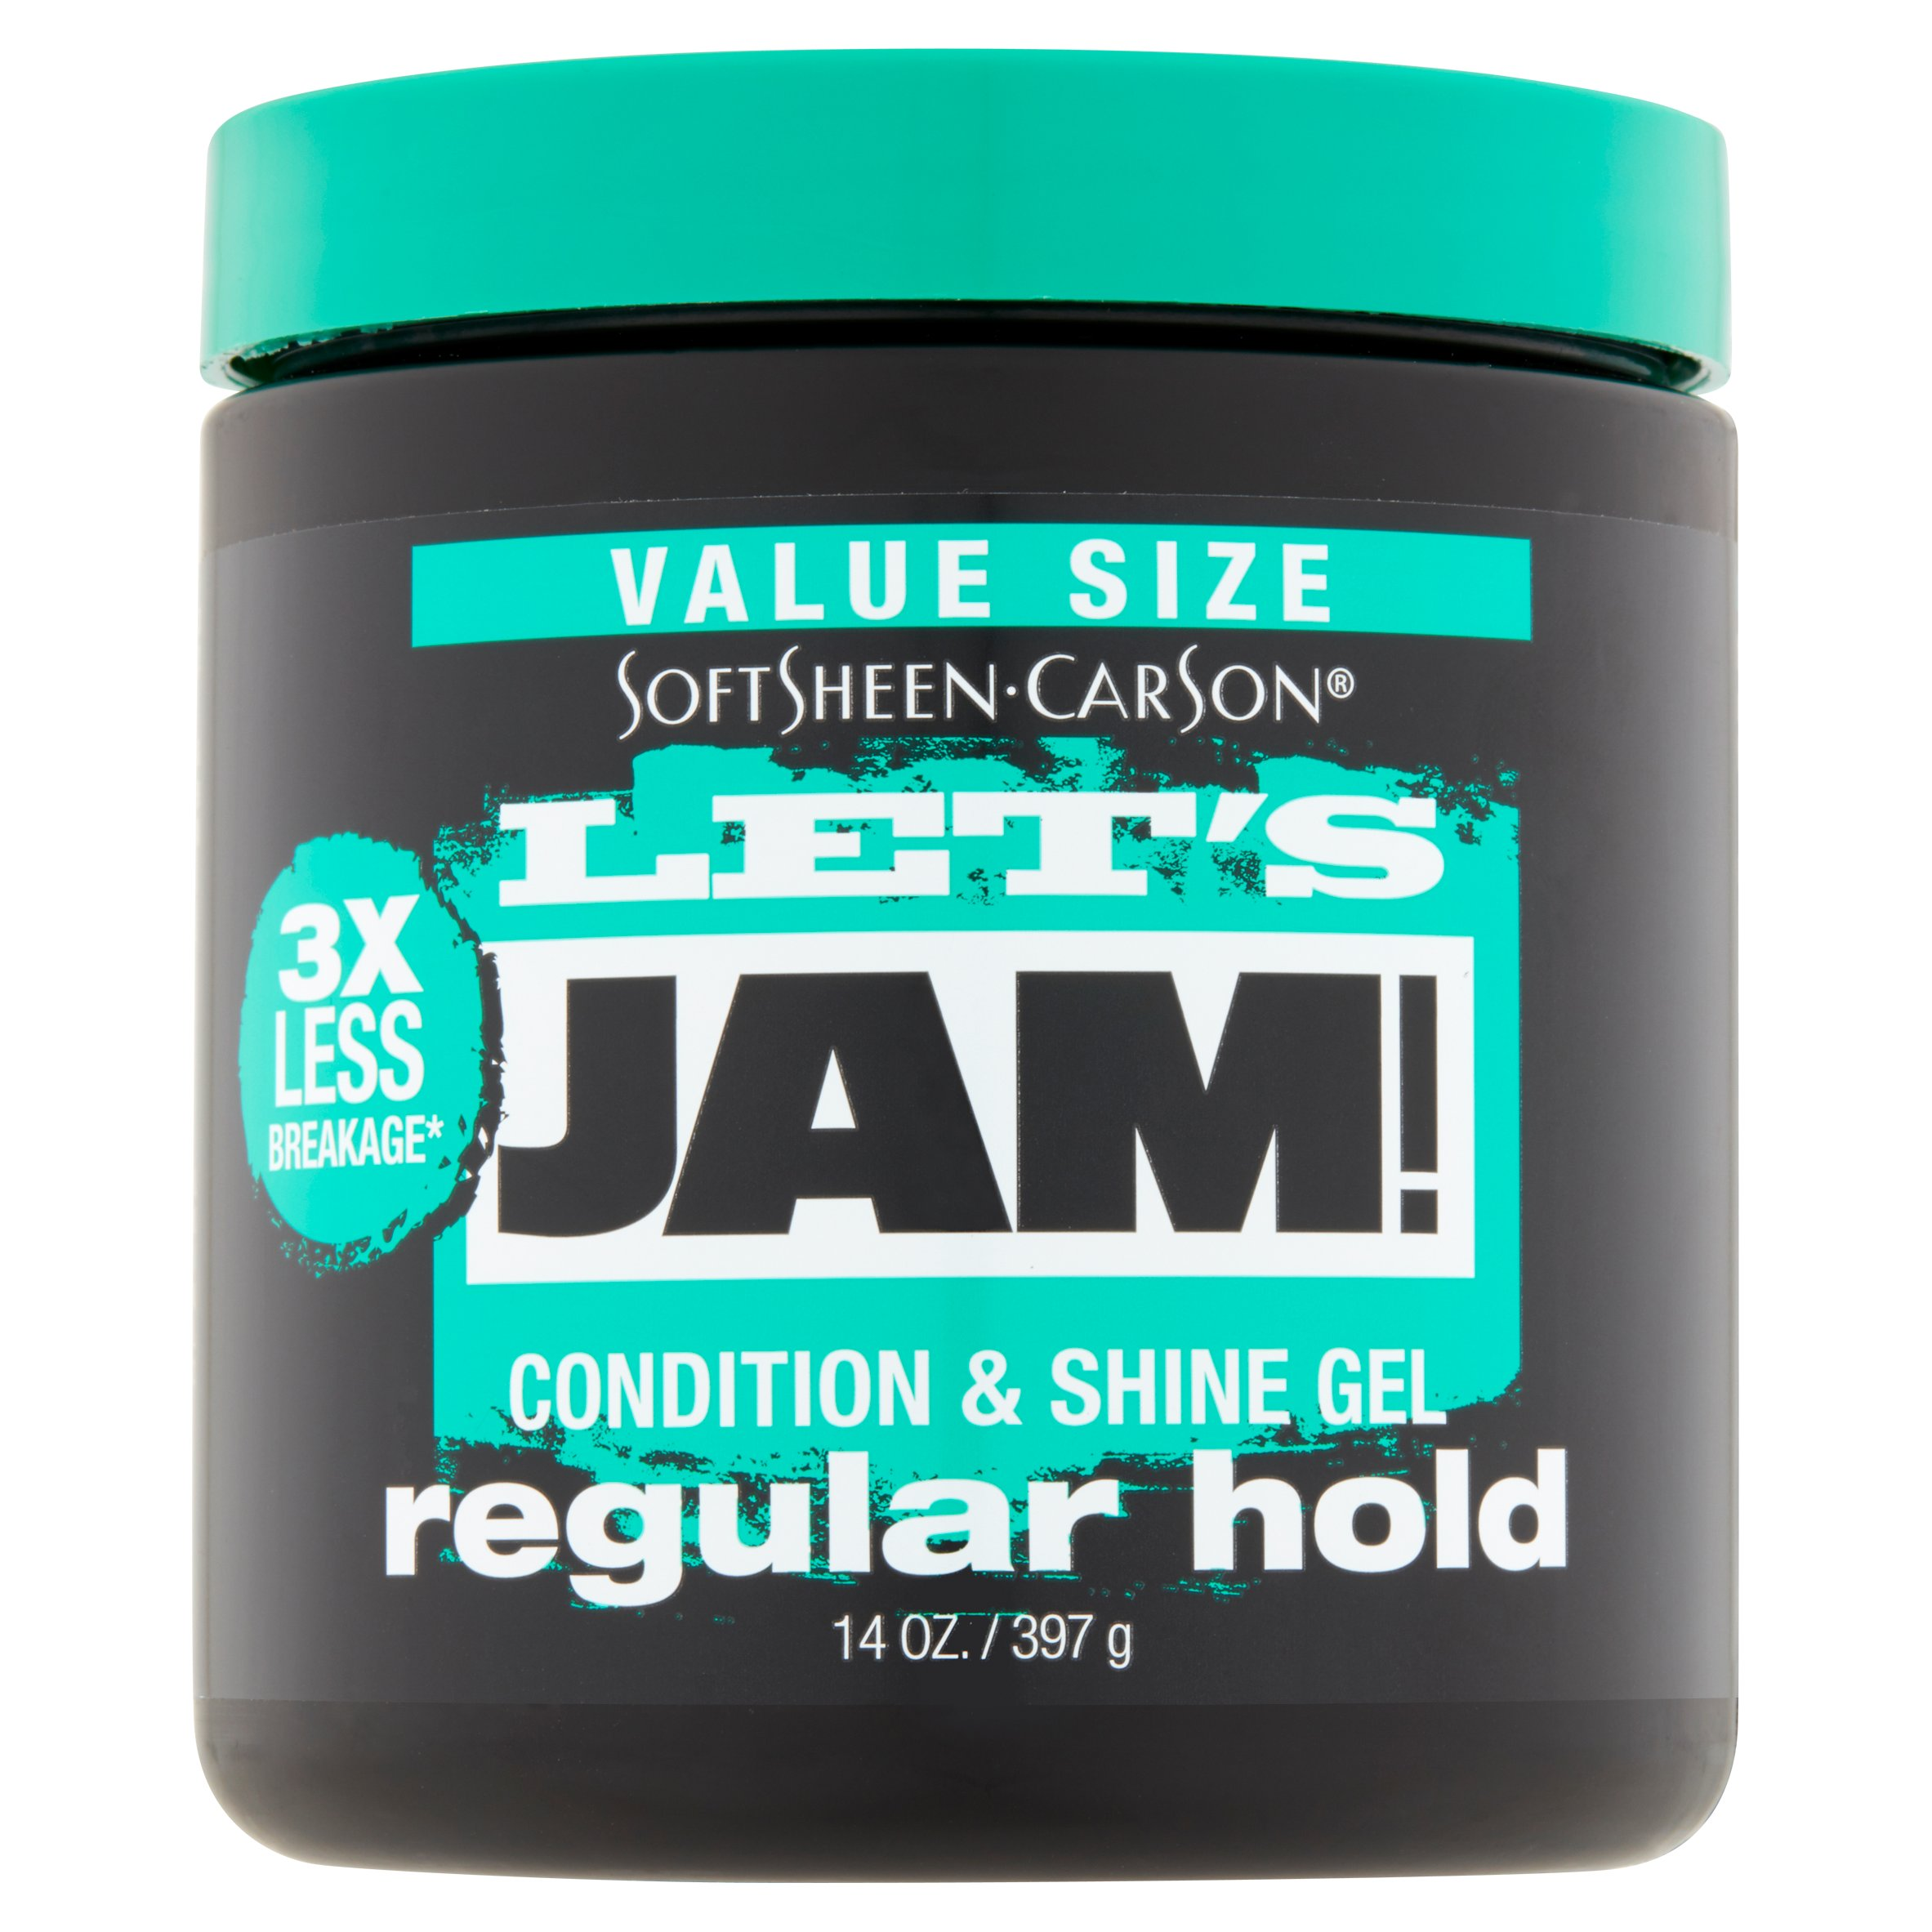 SoftSheen-Carson Let's Jam! Shining and Conditioning Hair Gel, All Hair Types, Regular Hold, 9 oz